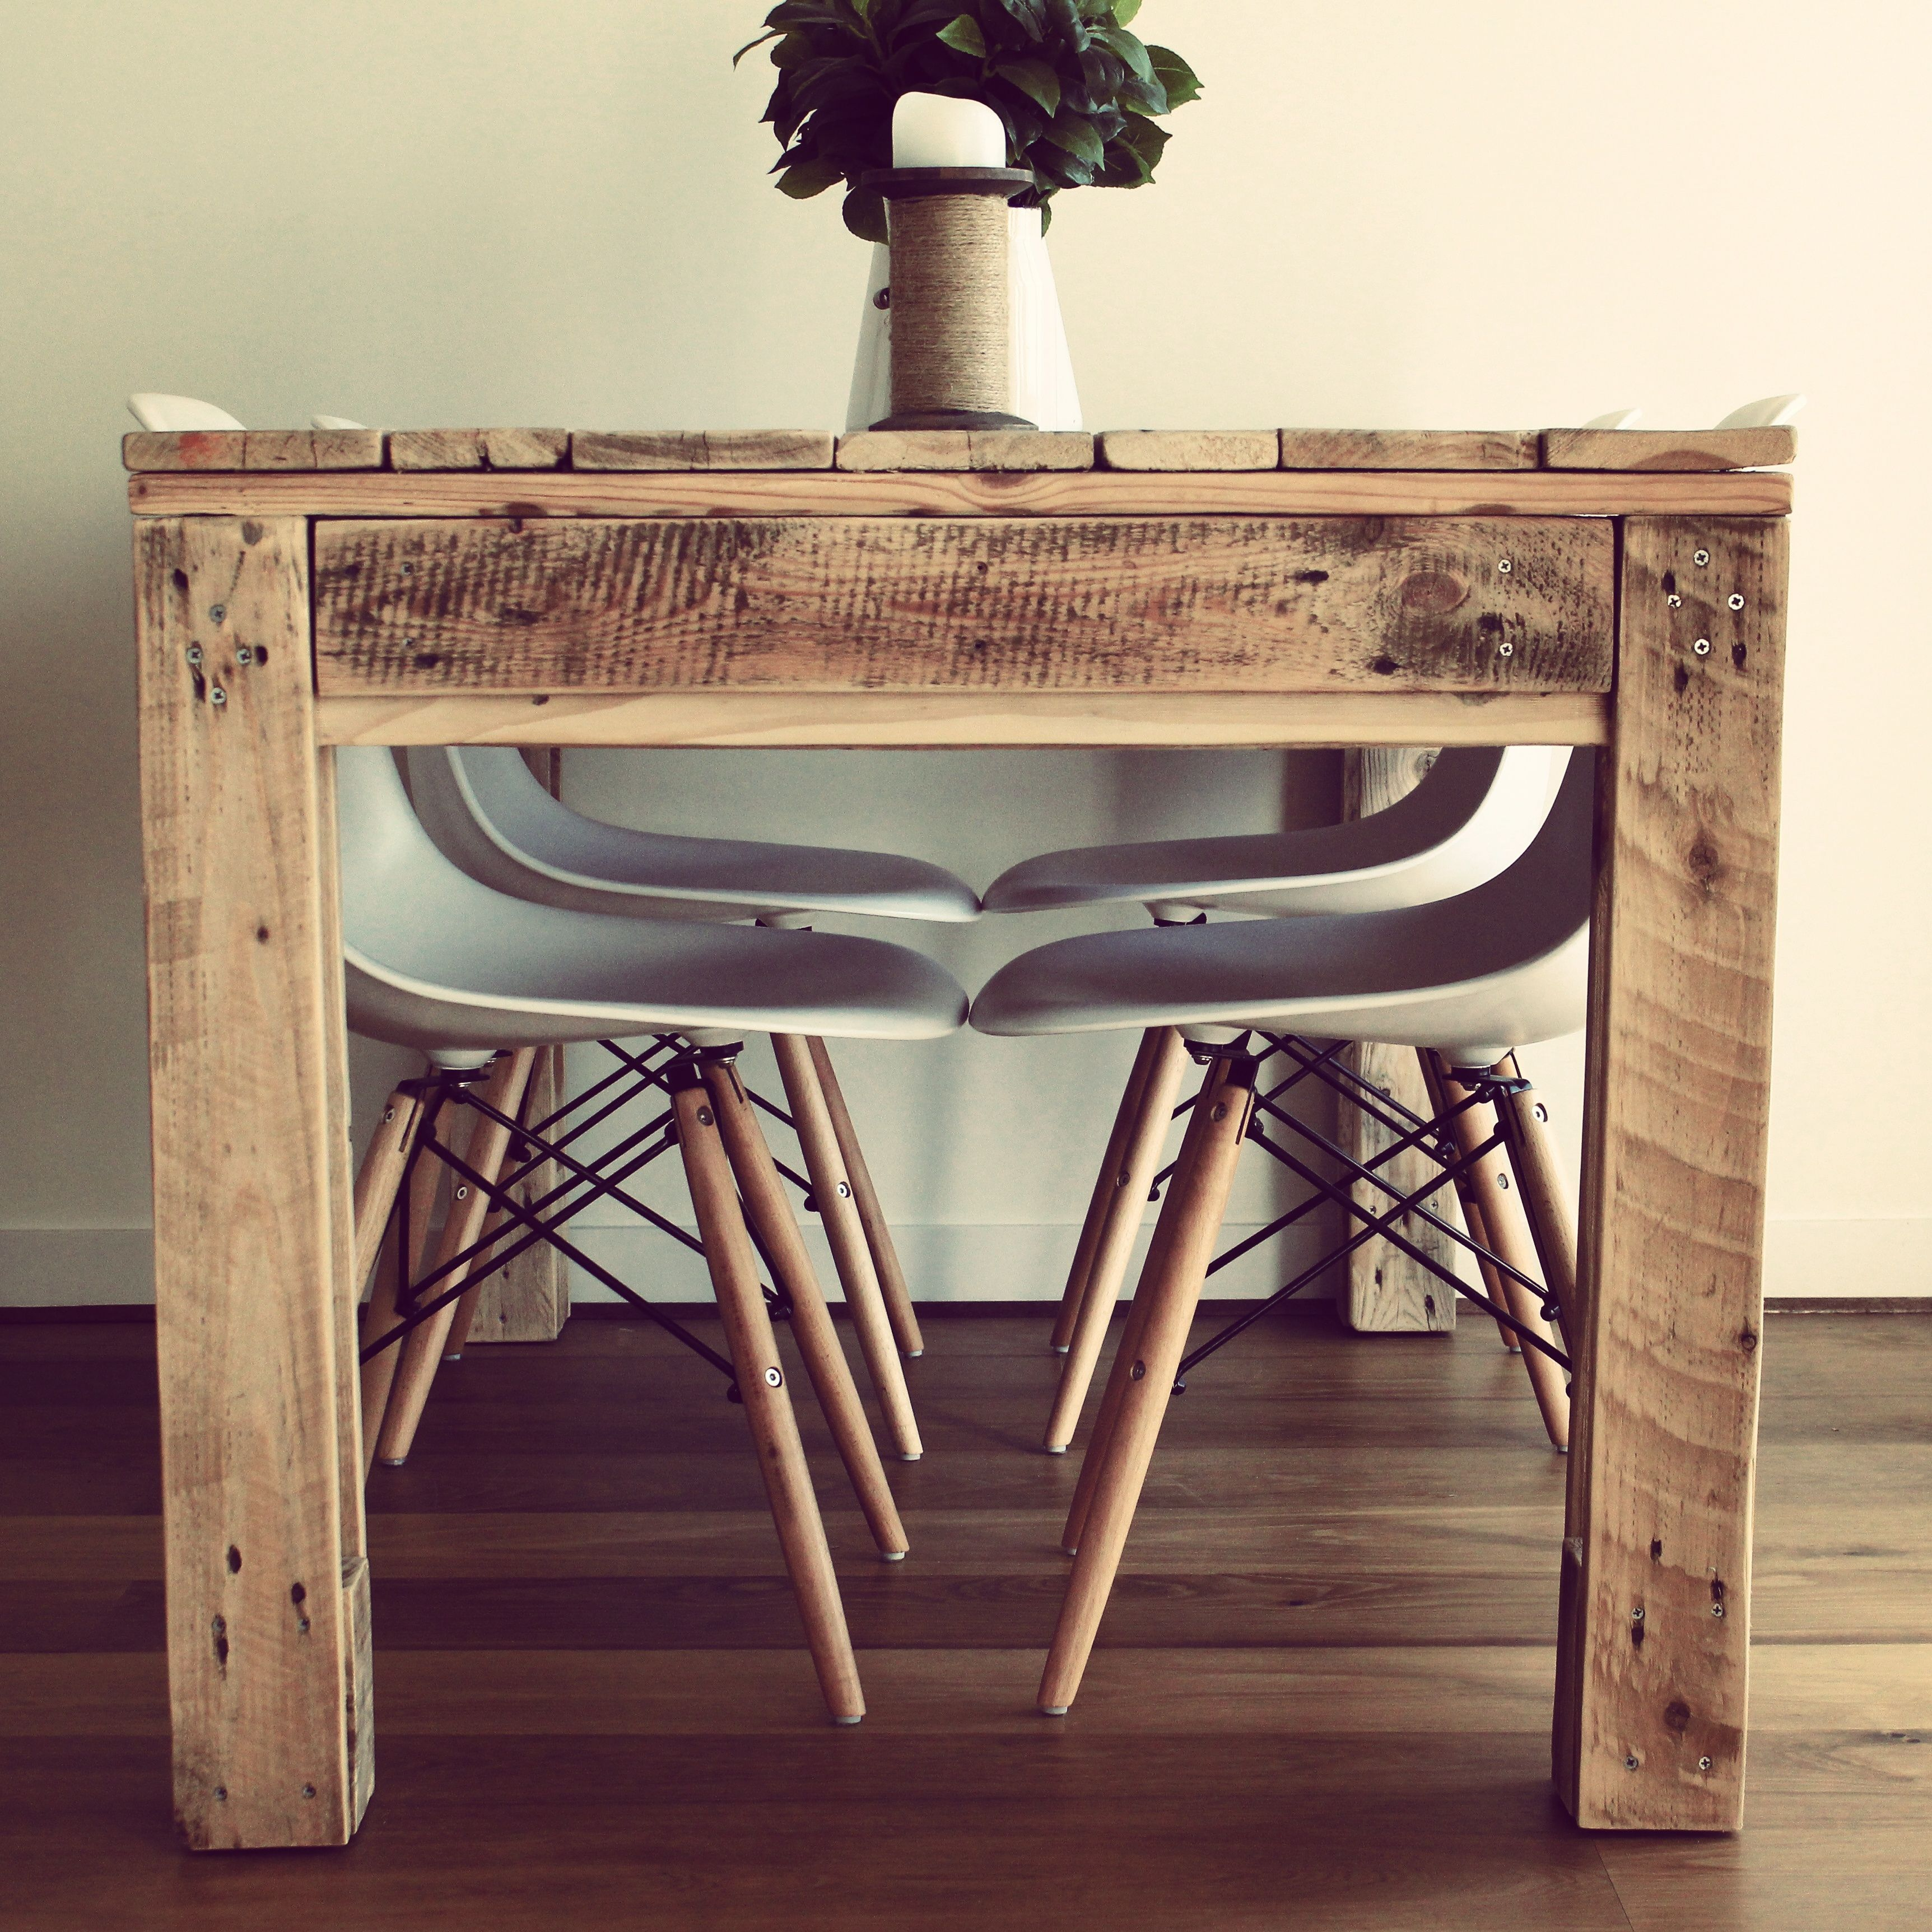 dining table made from reclaimed pallet timber | crative reclaimed